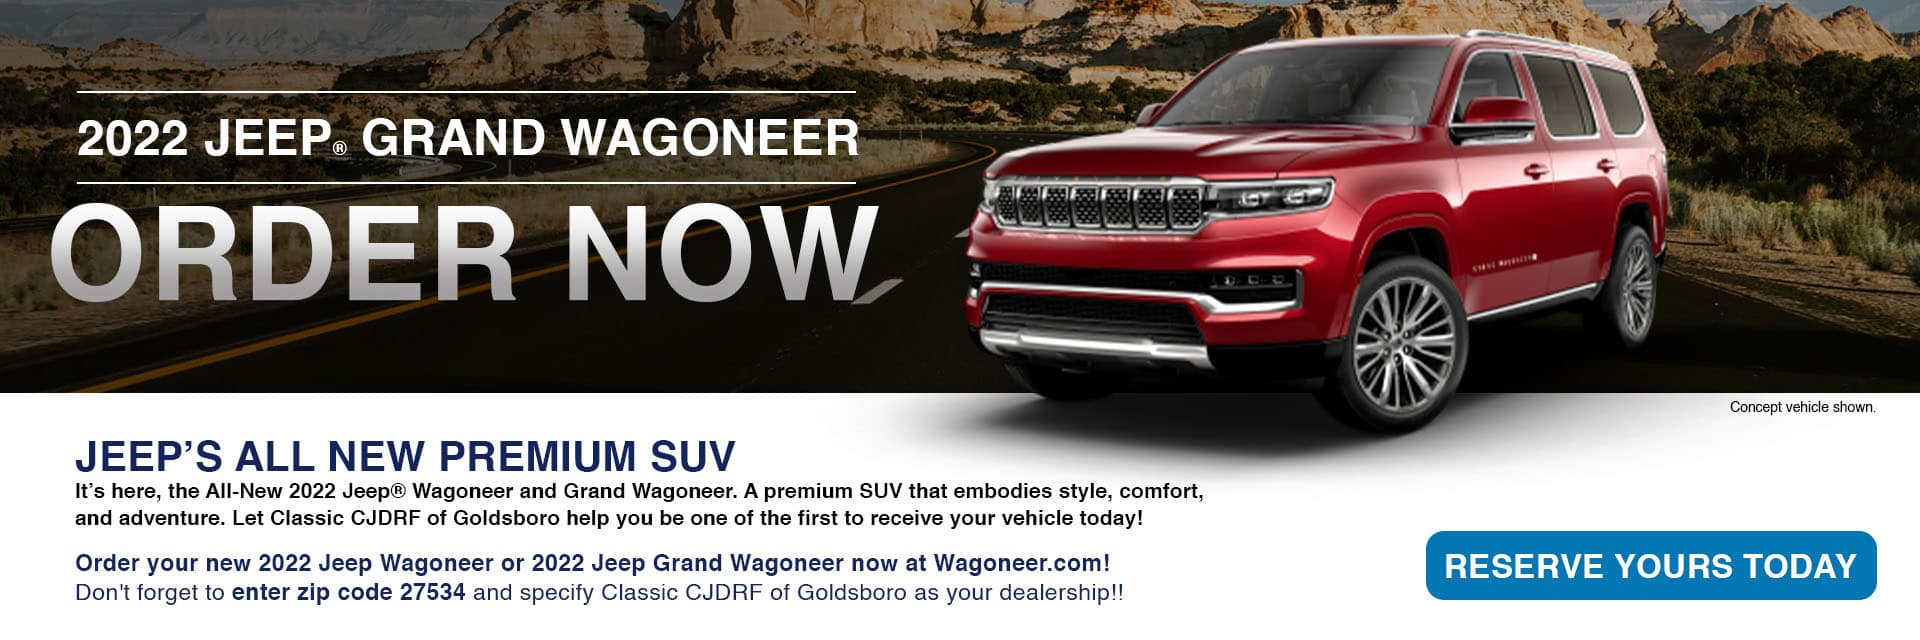 Wagoneer Email Sections1920x640 (3)